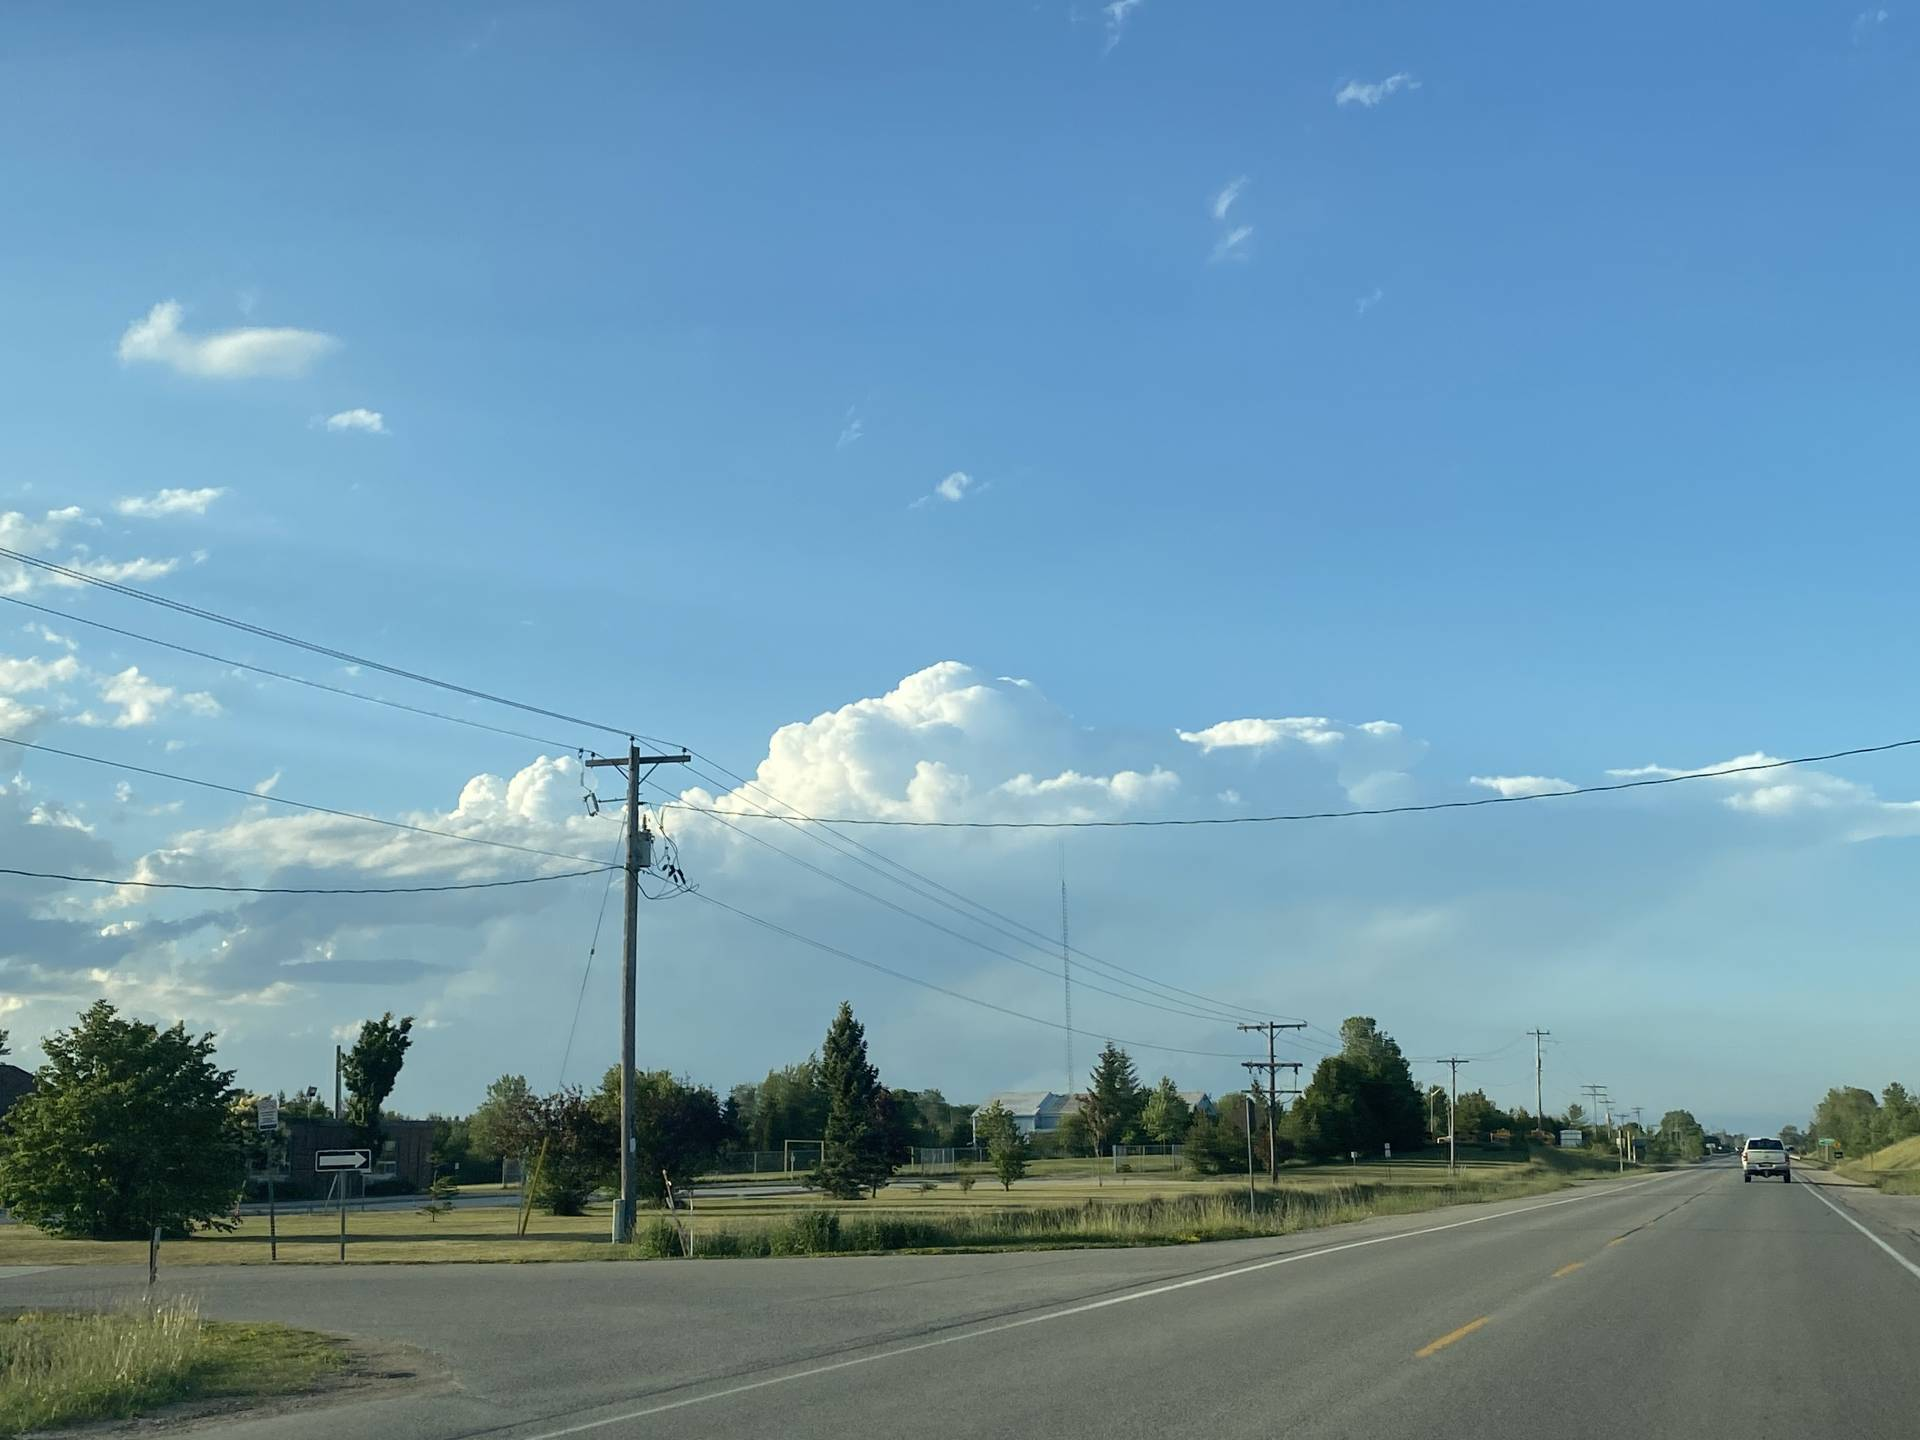 And here we go, some initiation starting just north of Kincardine. Some structure is now visible! #OnStorm #OnWx